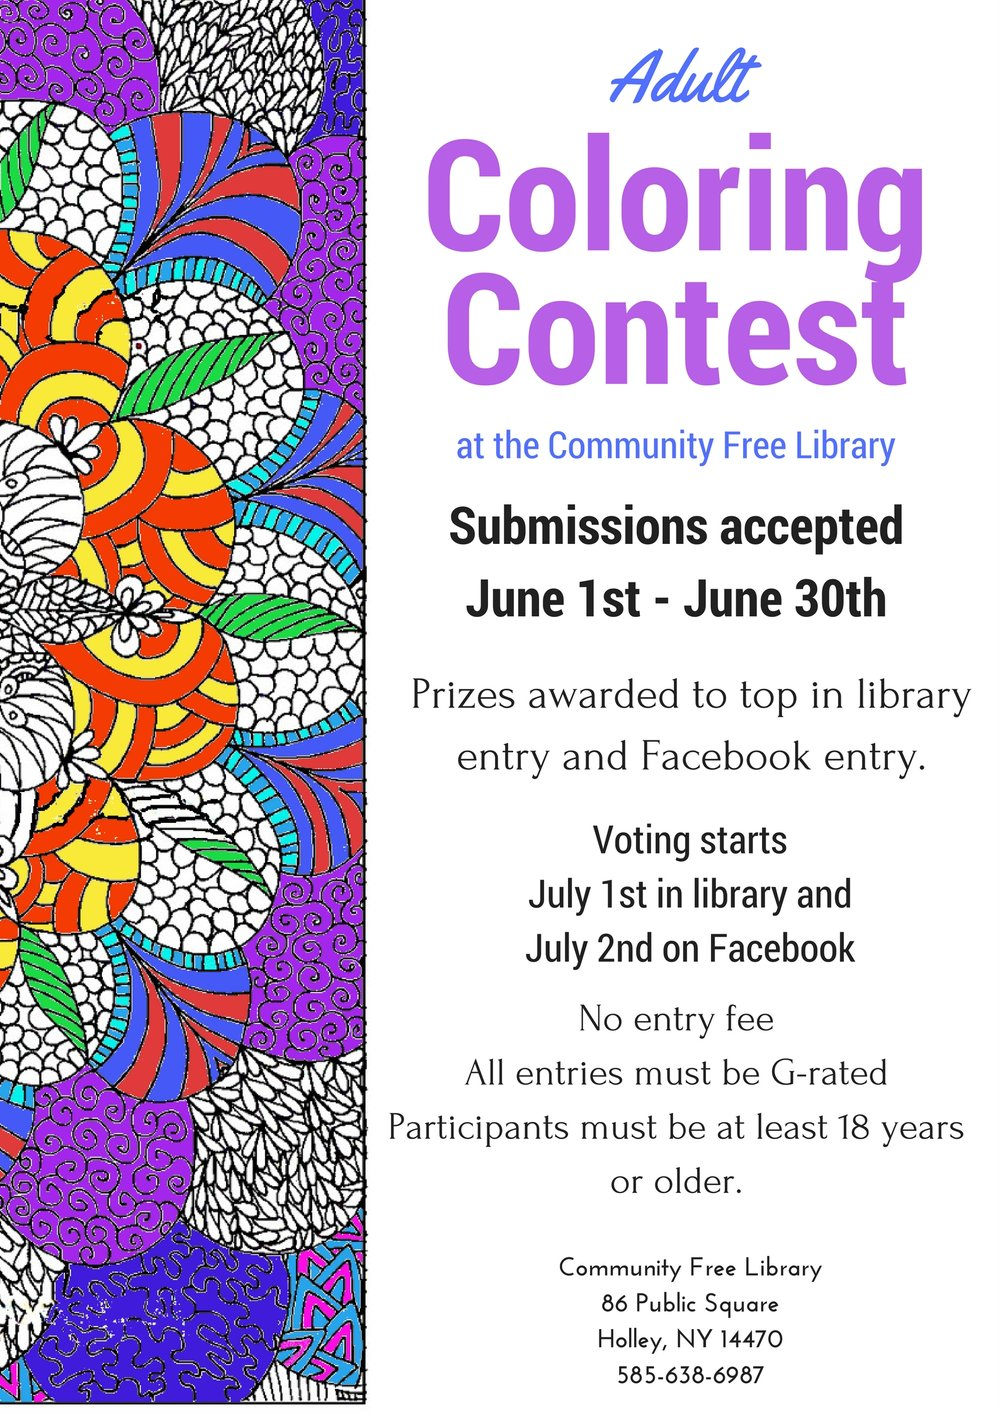 Adult Coloring Contest — Community Free Library